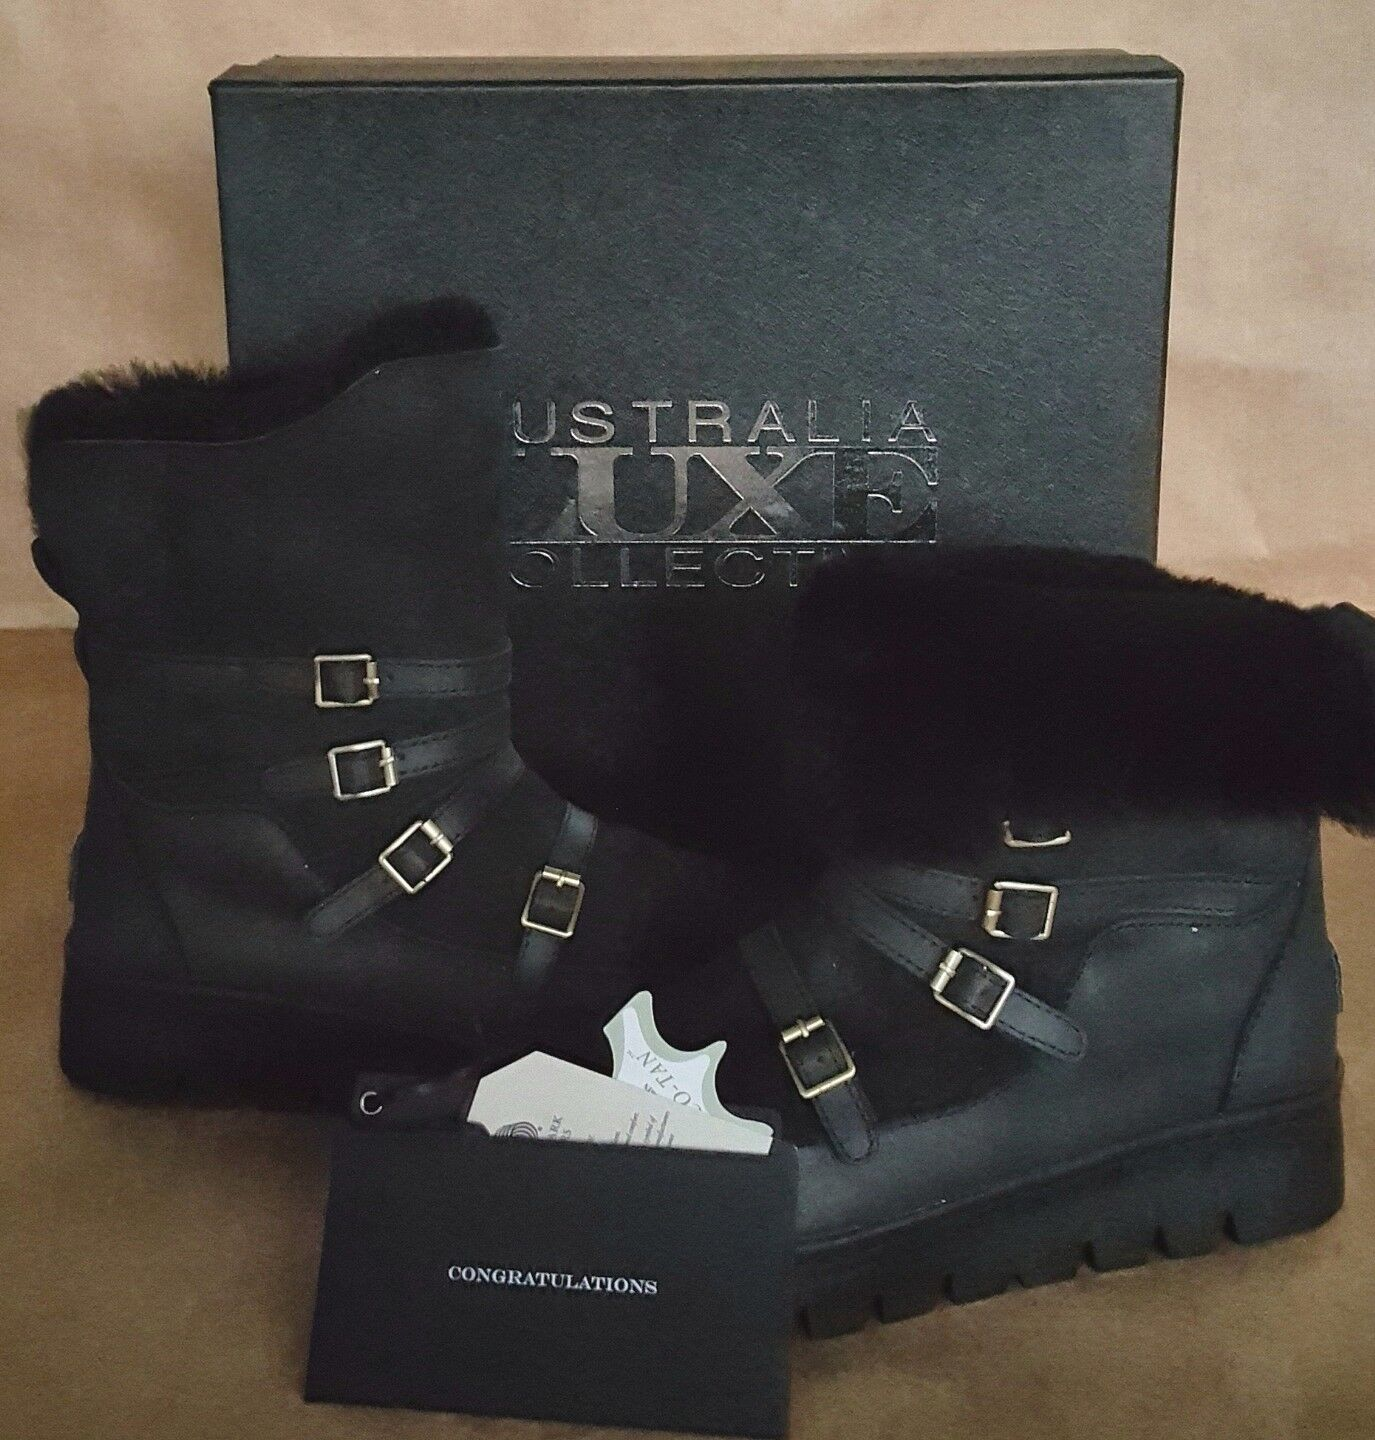 New 195. Australia Luxe Collective Currie Boots 9 Leather Suede Shearling Boots